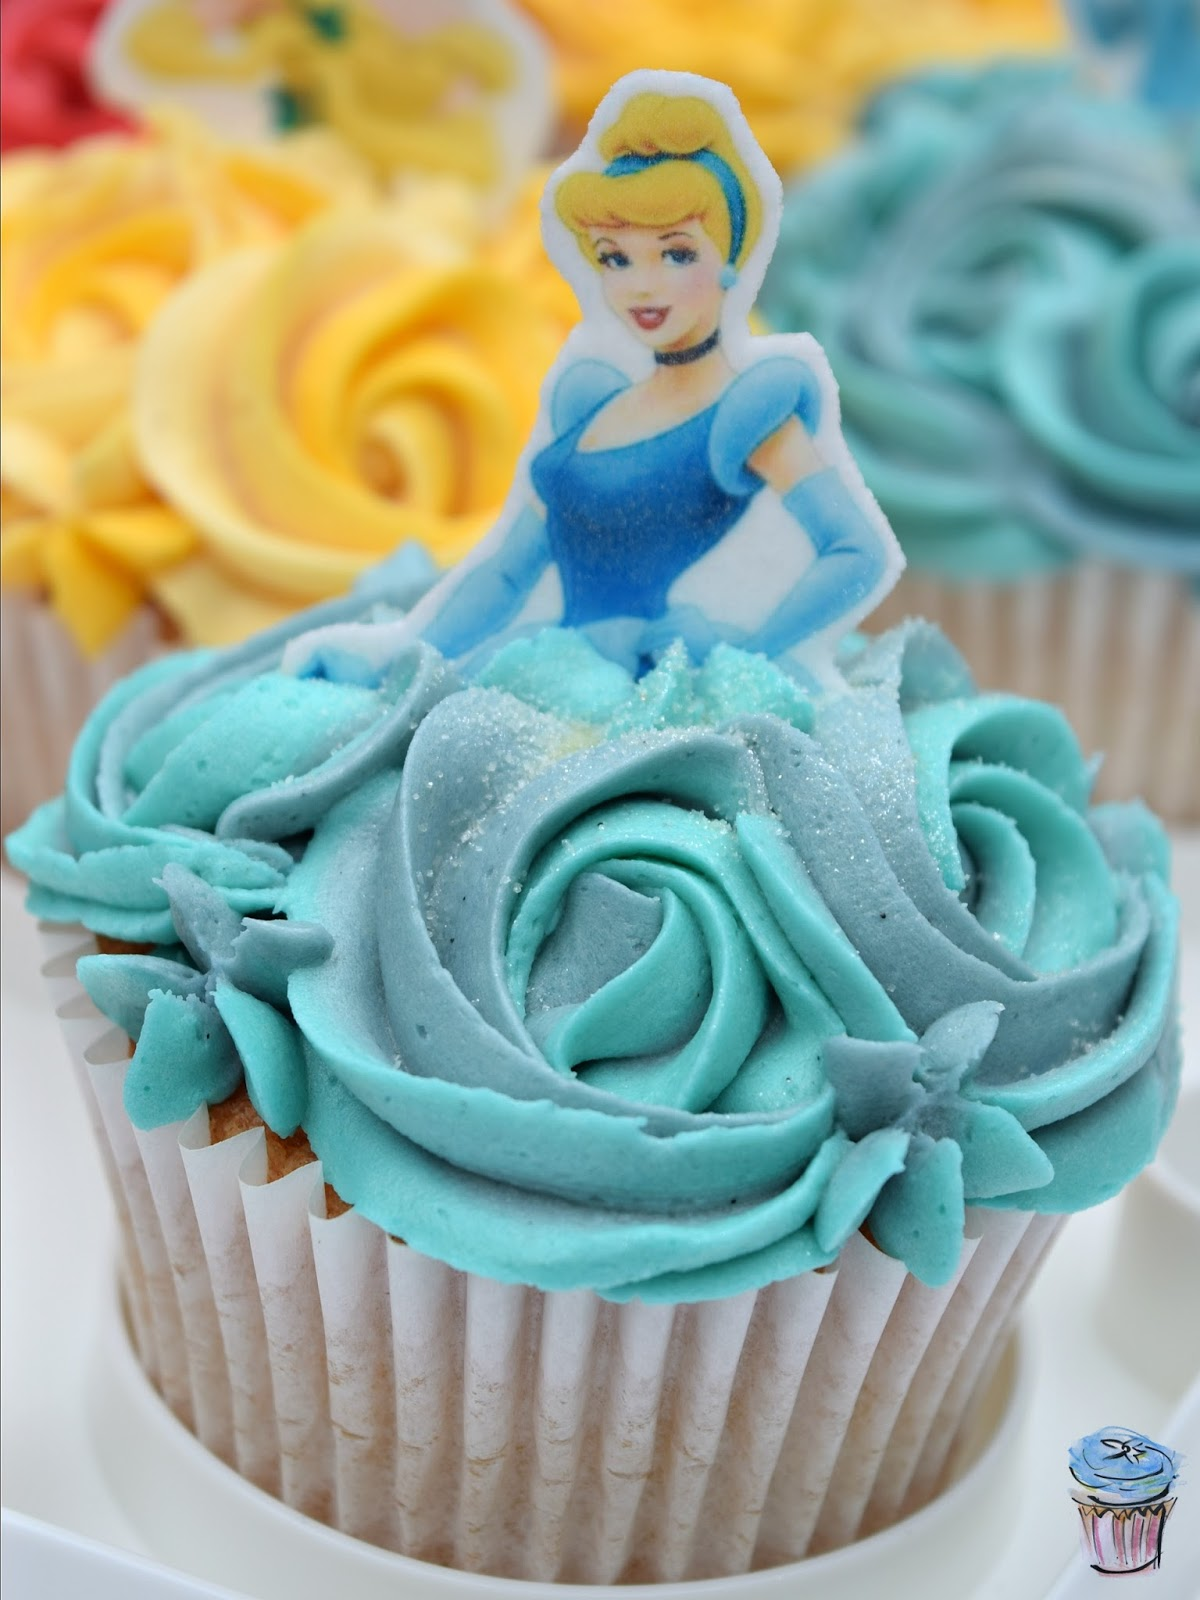 Kathryns Cupcakes Dairy Free Cupcakes Beauty Lifestyle Blog